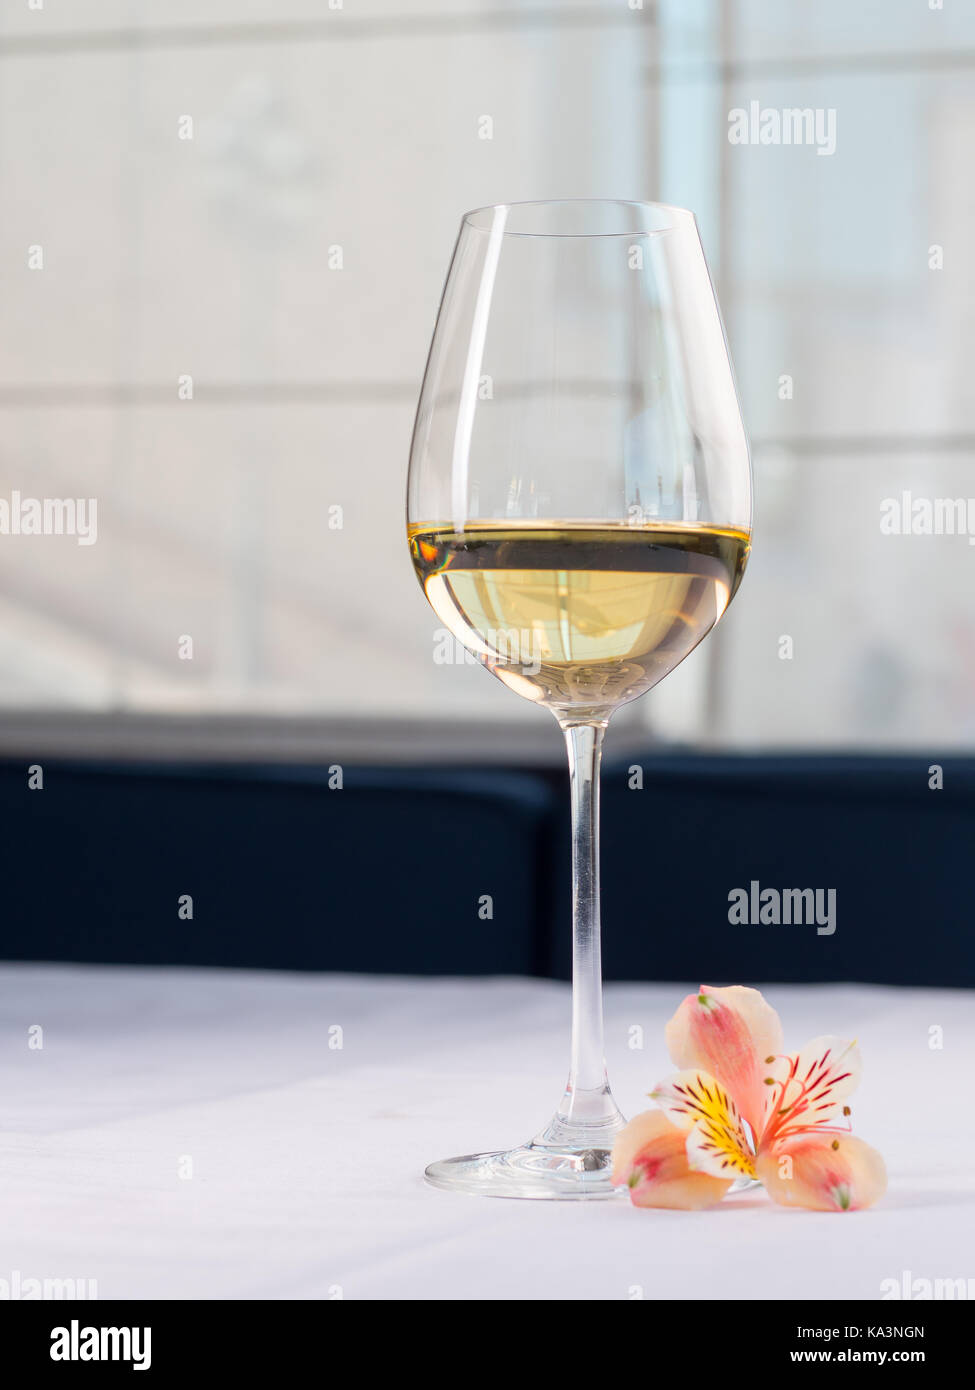 Glass of white wine on a white background and with soft shadow. Beautiful flower near on the table in restaurant - Stock Image